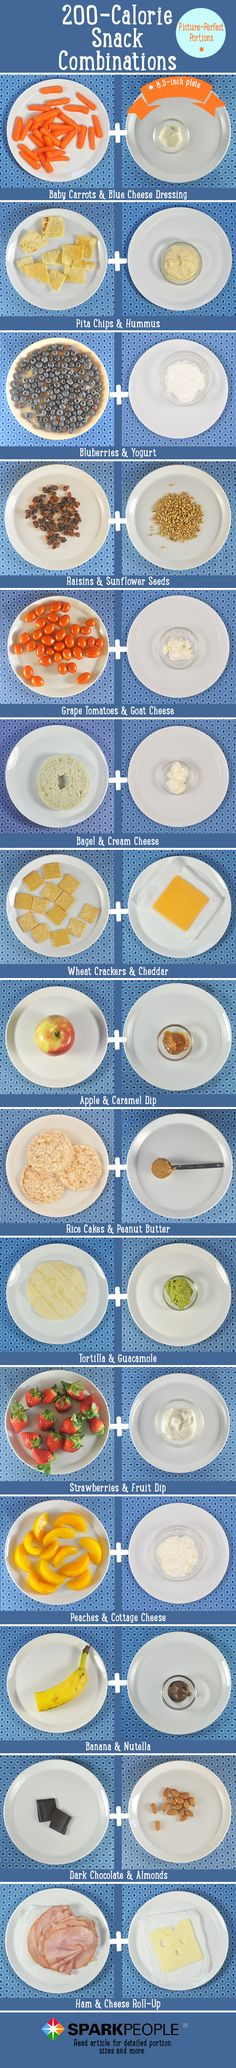 Yummy and filling 200-calorie snack ideas | via @SparkPeople #food #diet #healthy